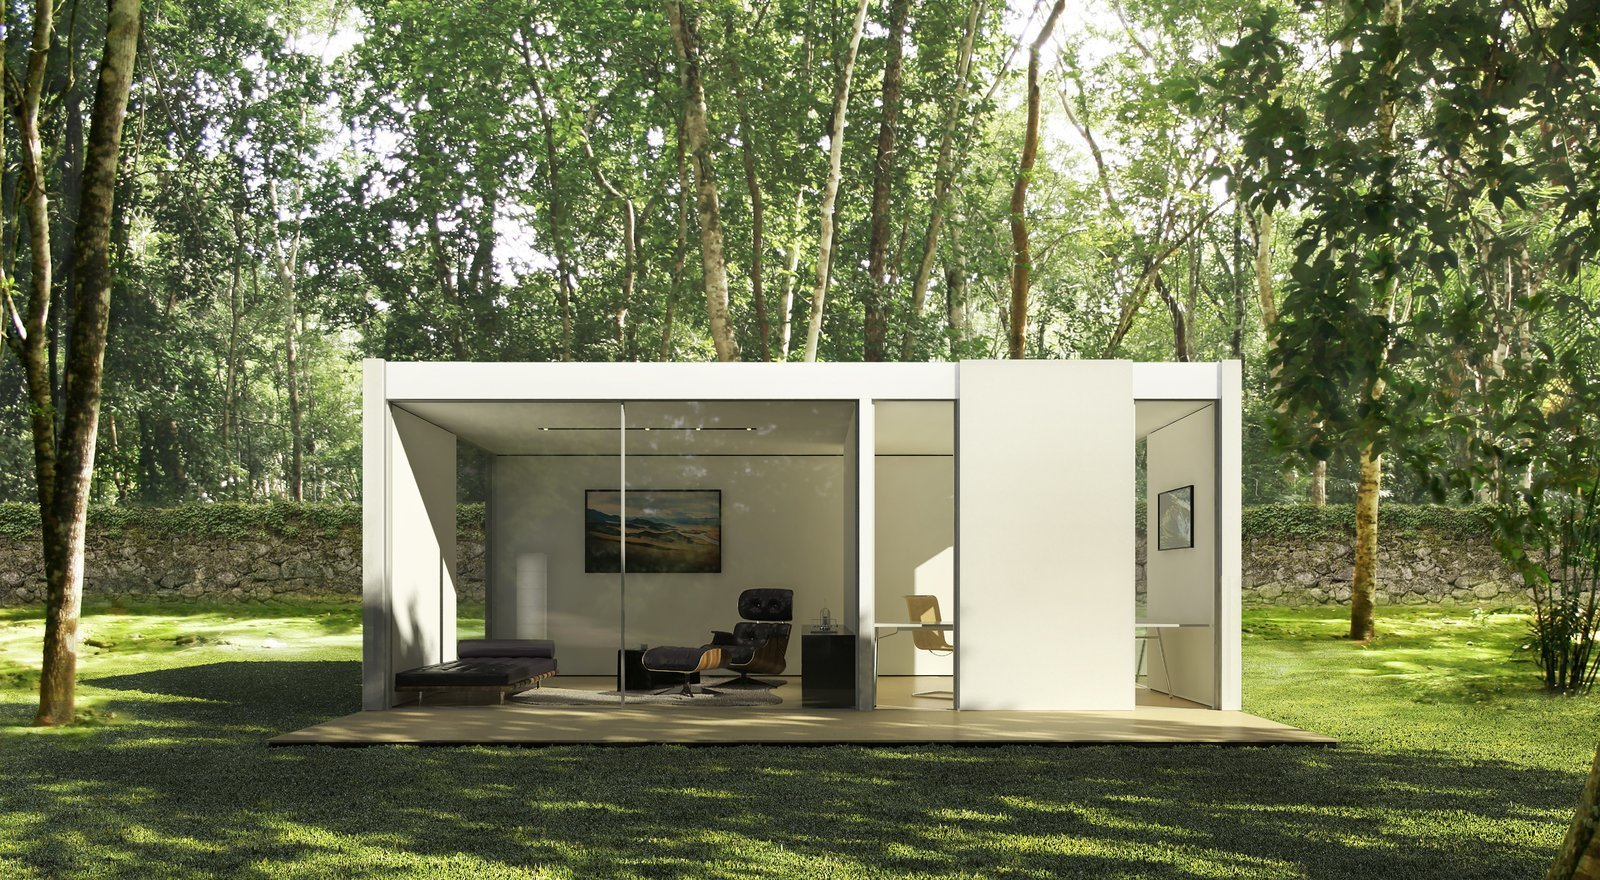 Grass, Back Yard, Shed & Studio, and Living Space The Backyard Lounge and Office is 330 square feet and features windows on all sides.  Best Shed & Studio Photos from The L.A. Prefab Company That's Aiming to Make Good Design Available to Everyone